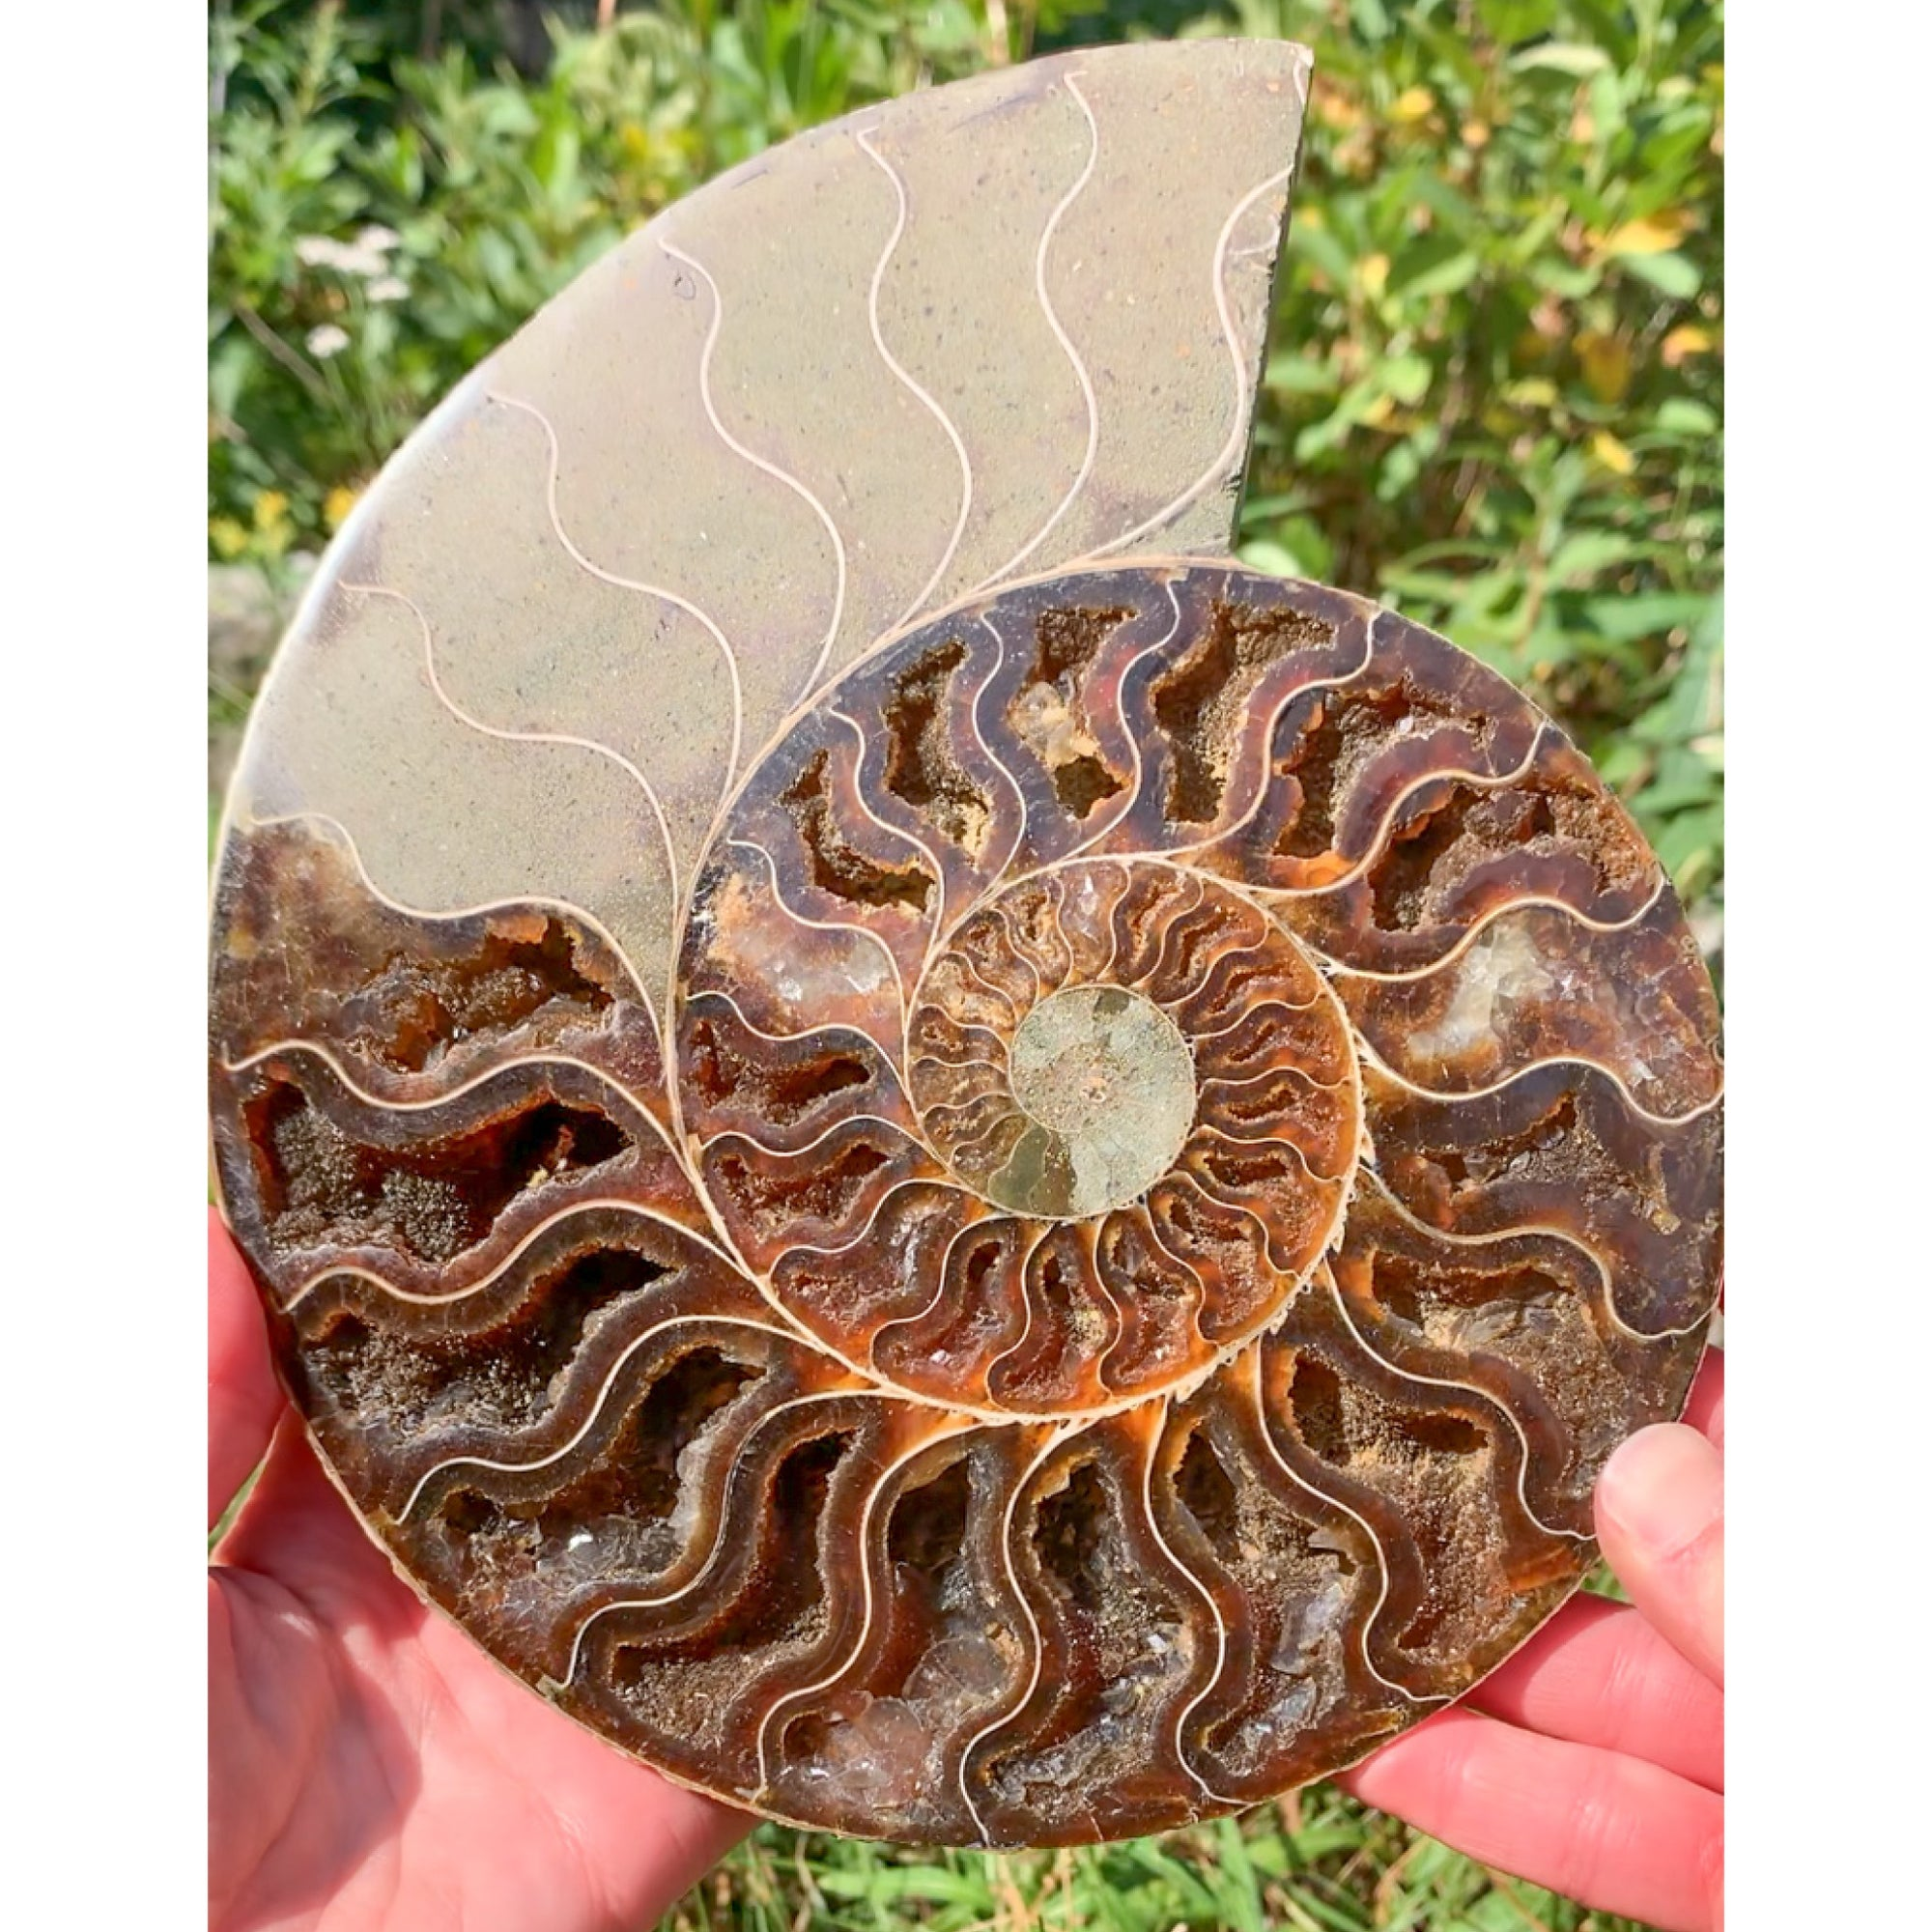 Extra Large Fossil Ammonite Pair from Madagascar with Calcite Crystals (Cut and Polished Pair)